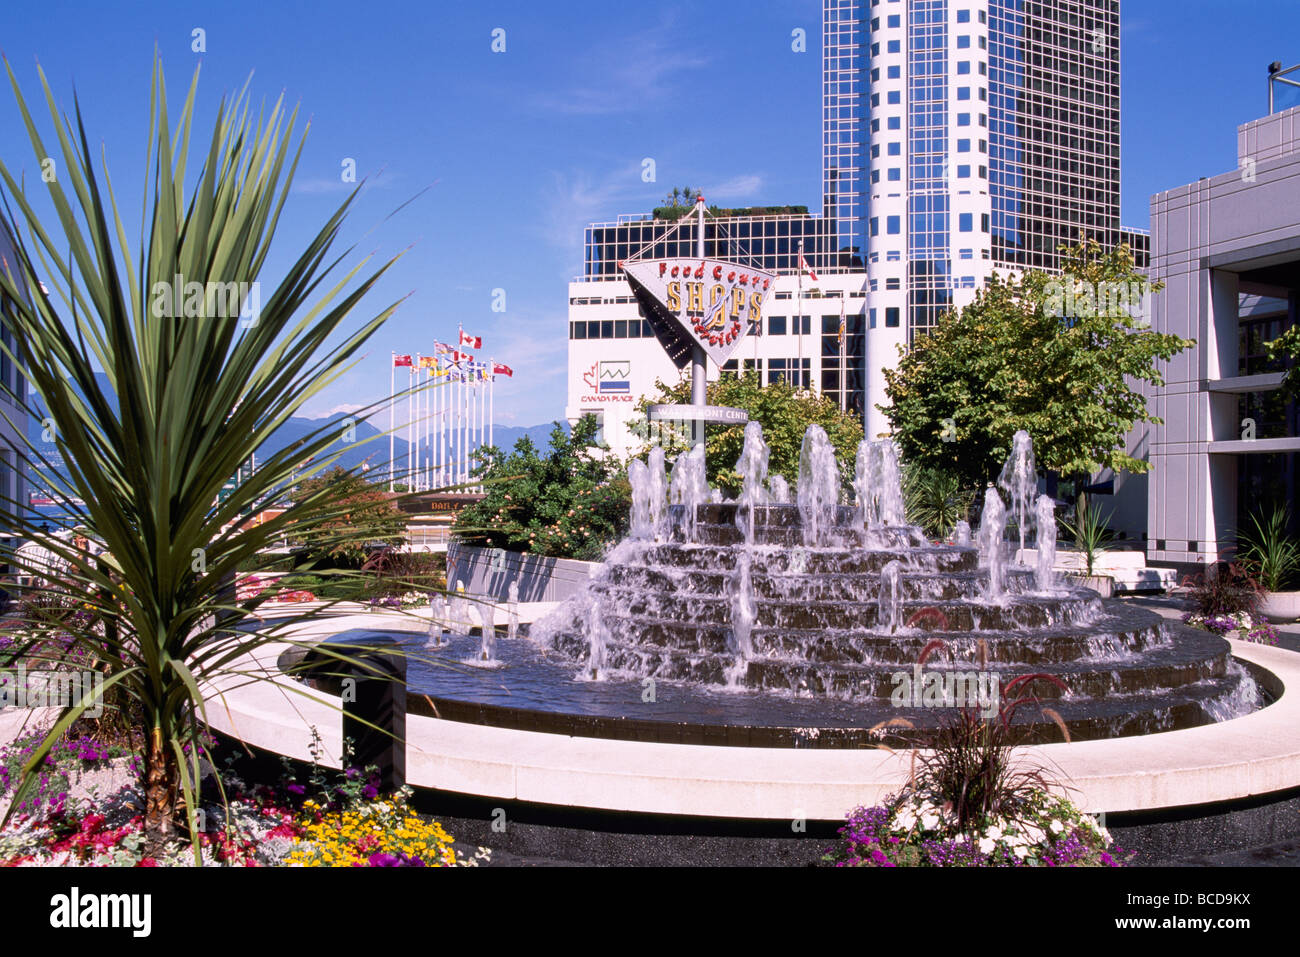 Water fountains canada - Stock Photo Water Fountain At Waterfront Centre Overlooking Canada Place Trade And Convention Centre Vancouver British Columbia Canada